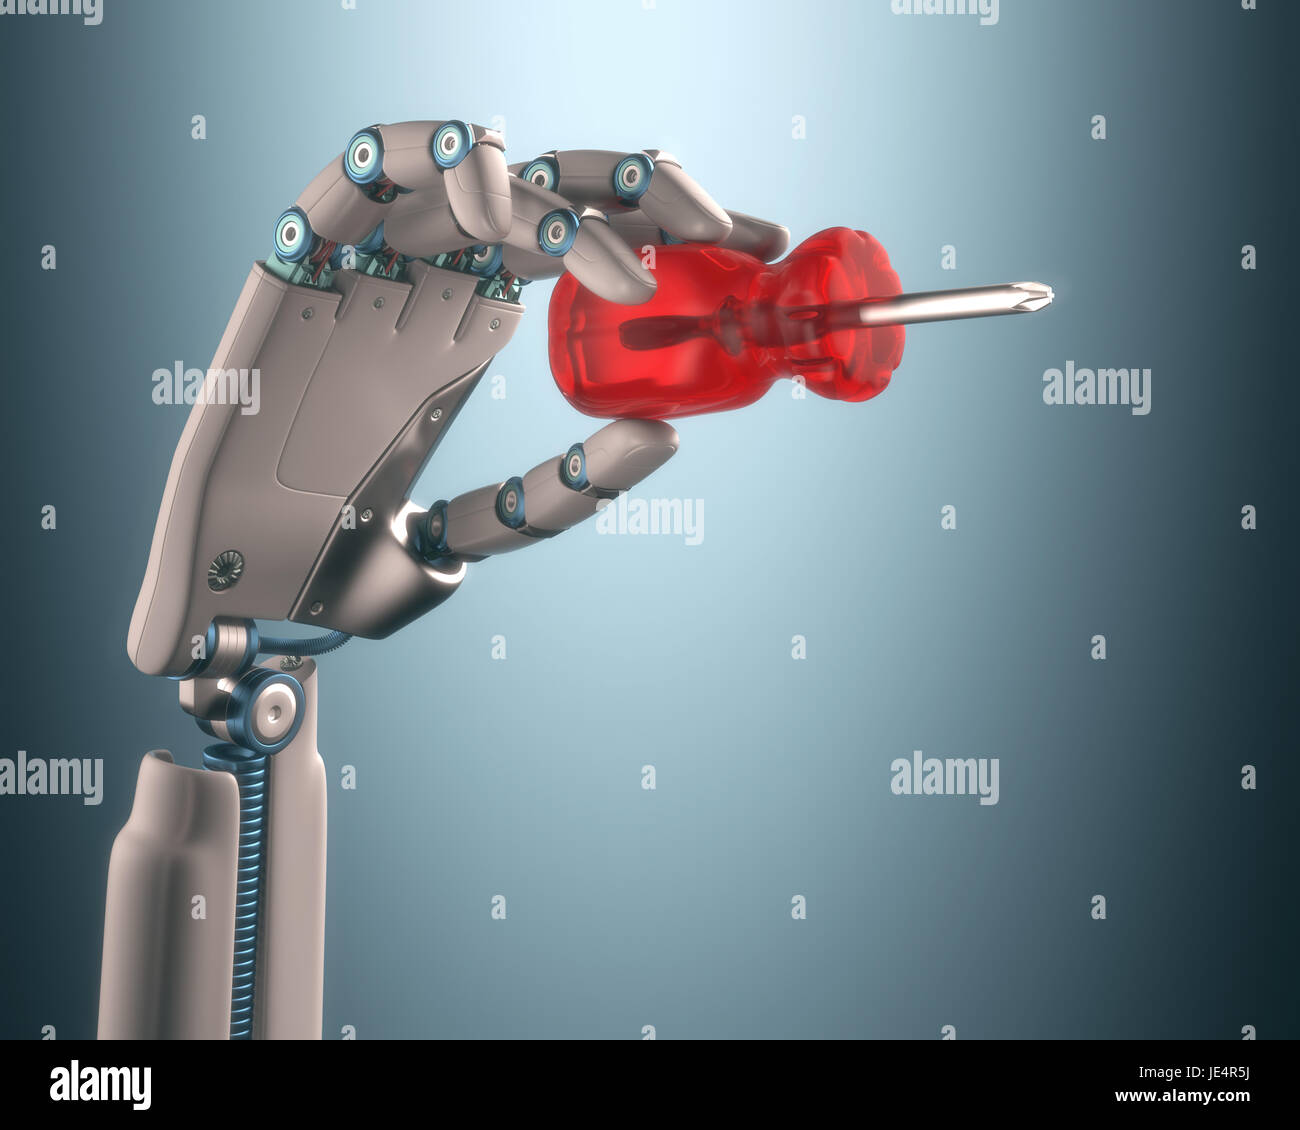 Robot hand holding a screwdriver on the concept of industrial automation. Clipping path included. Stock Photo